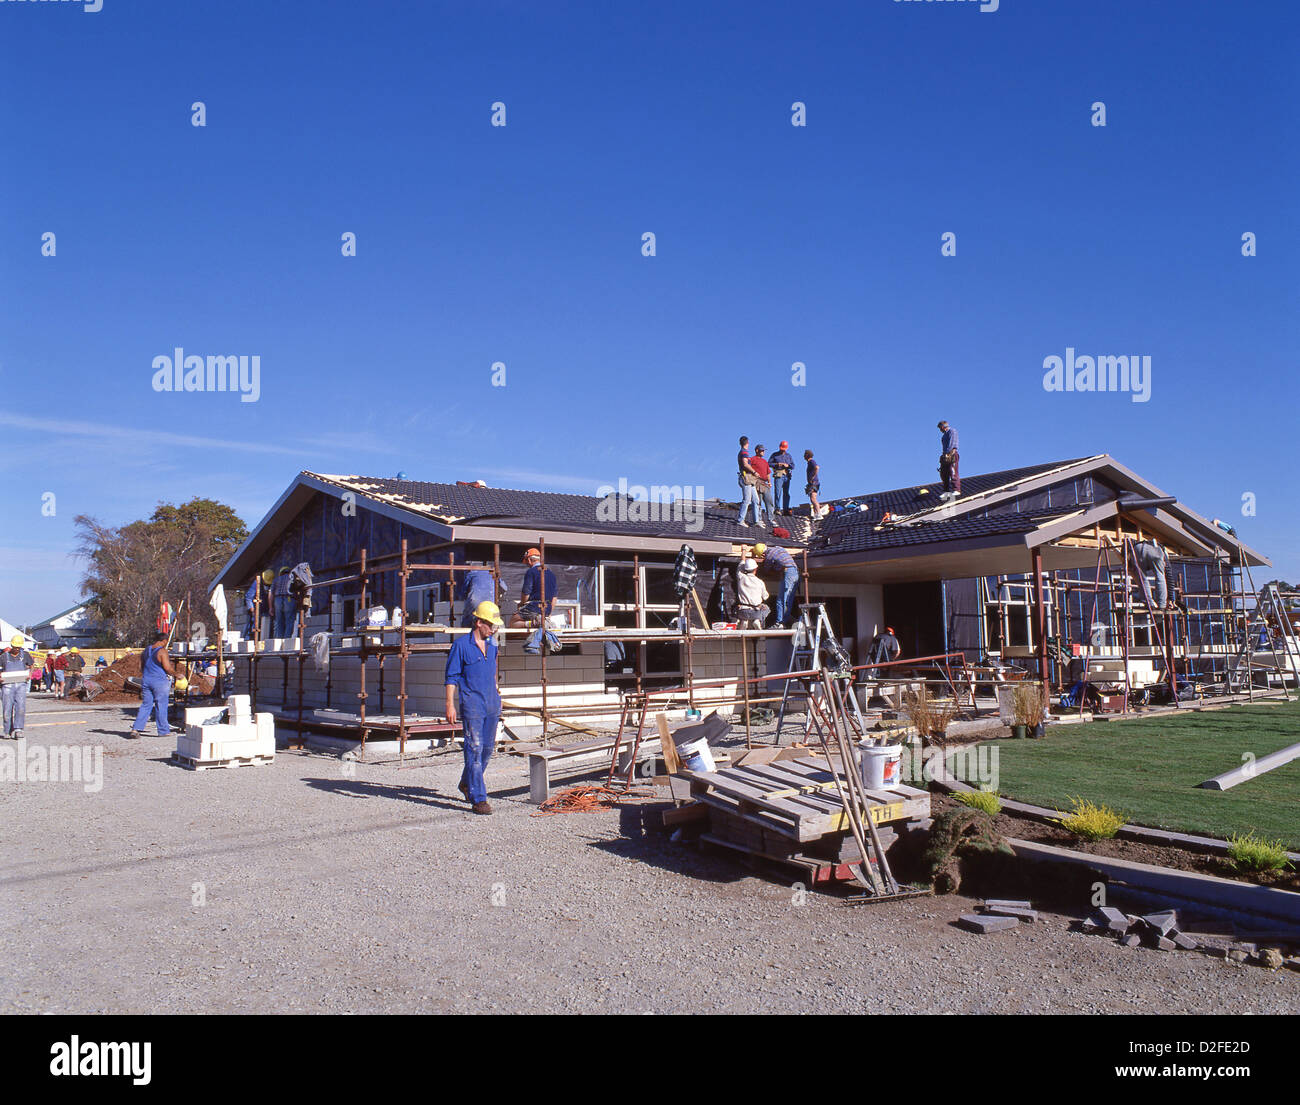 A hall built in a weekend by large group of volunteers, Spreydon, Christchurch, Canterbury District, South Island, - Stock Image